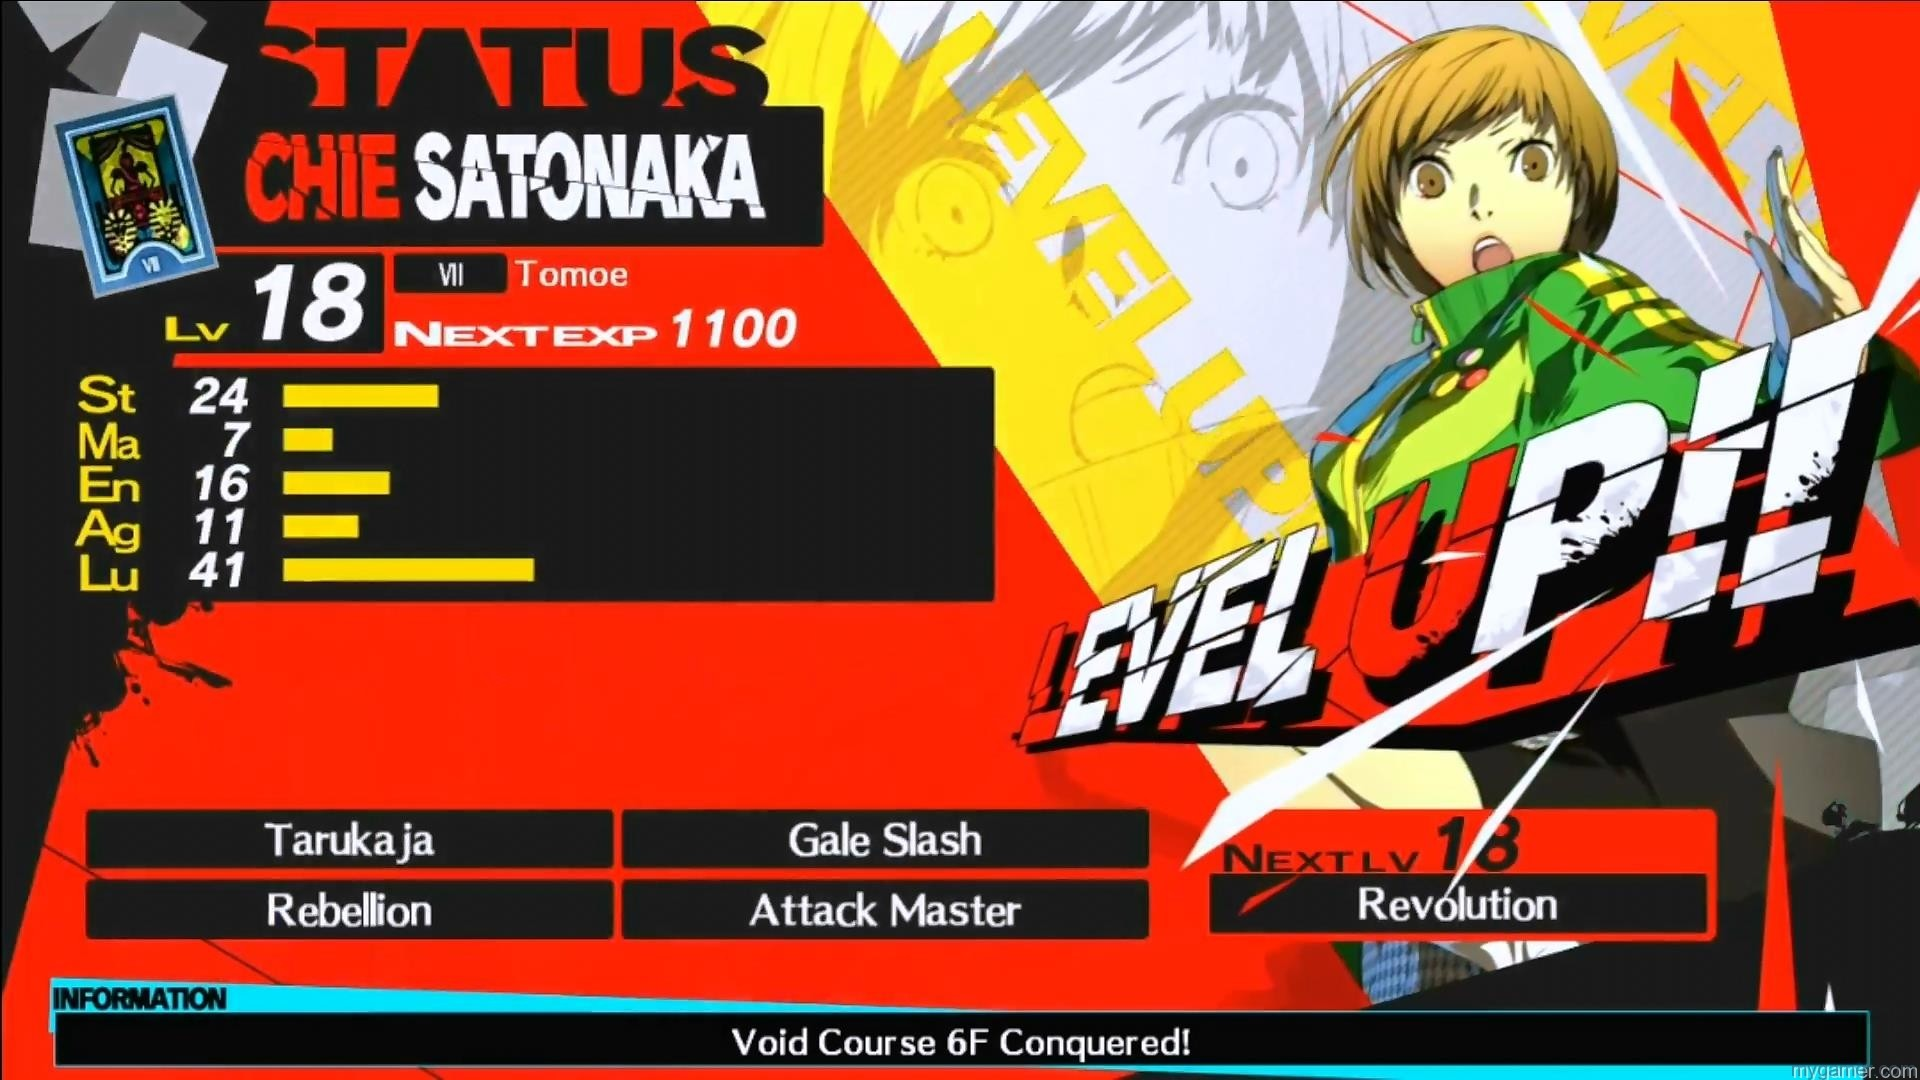 Mygamer Streaming Cast Awesome Blast! Persona 4: Arena Ultimax! Mygamer Streaming Cast Awesome Blast! Persona 4: Arena Ultimax! chielevel